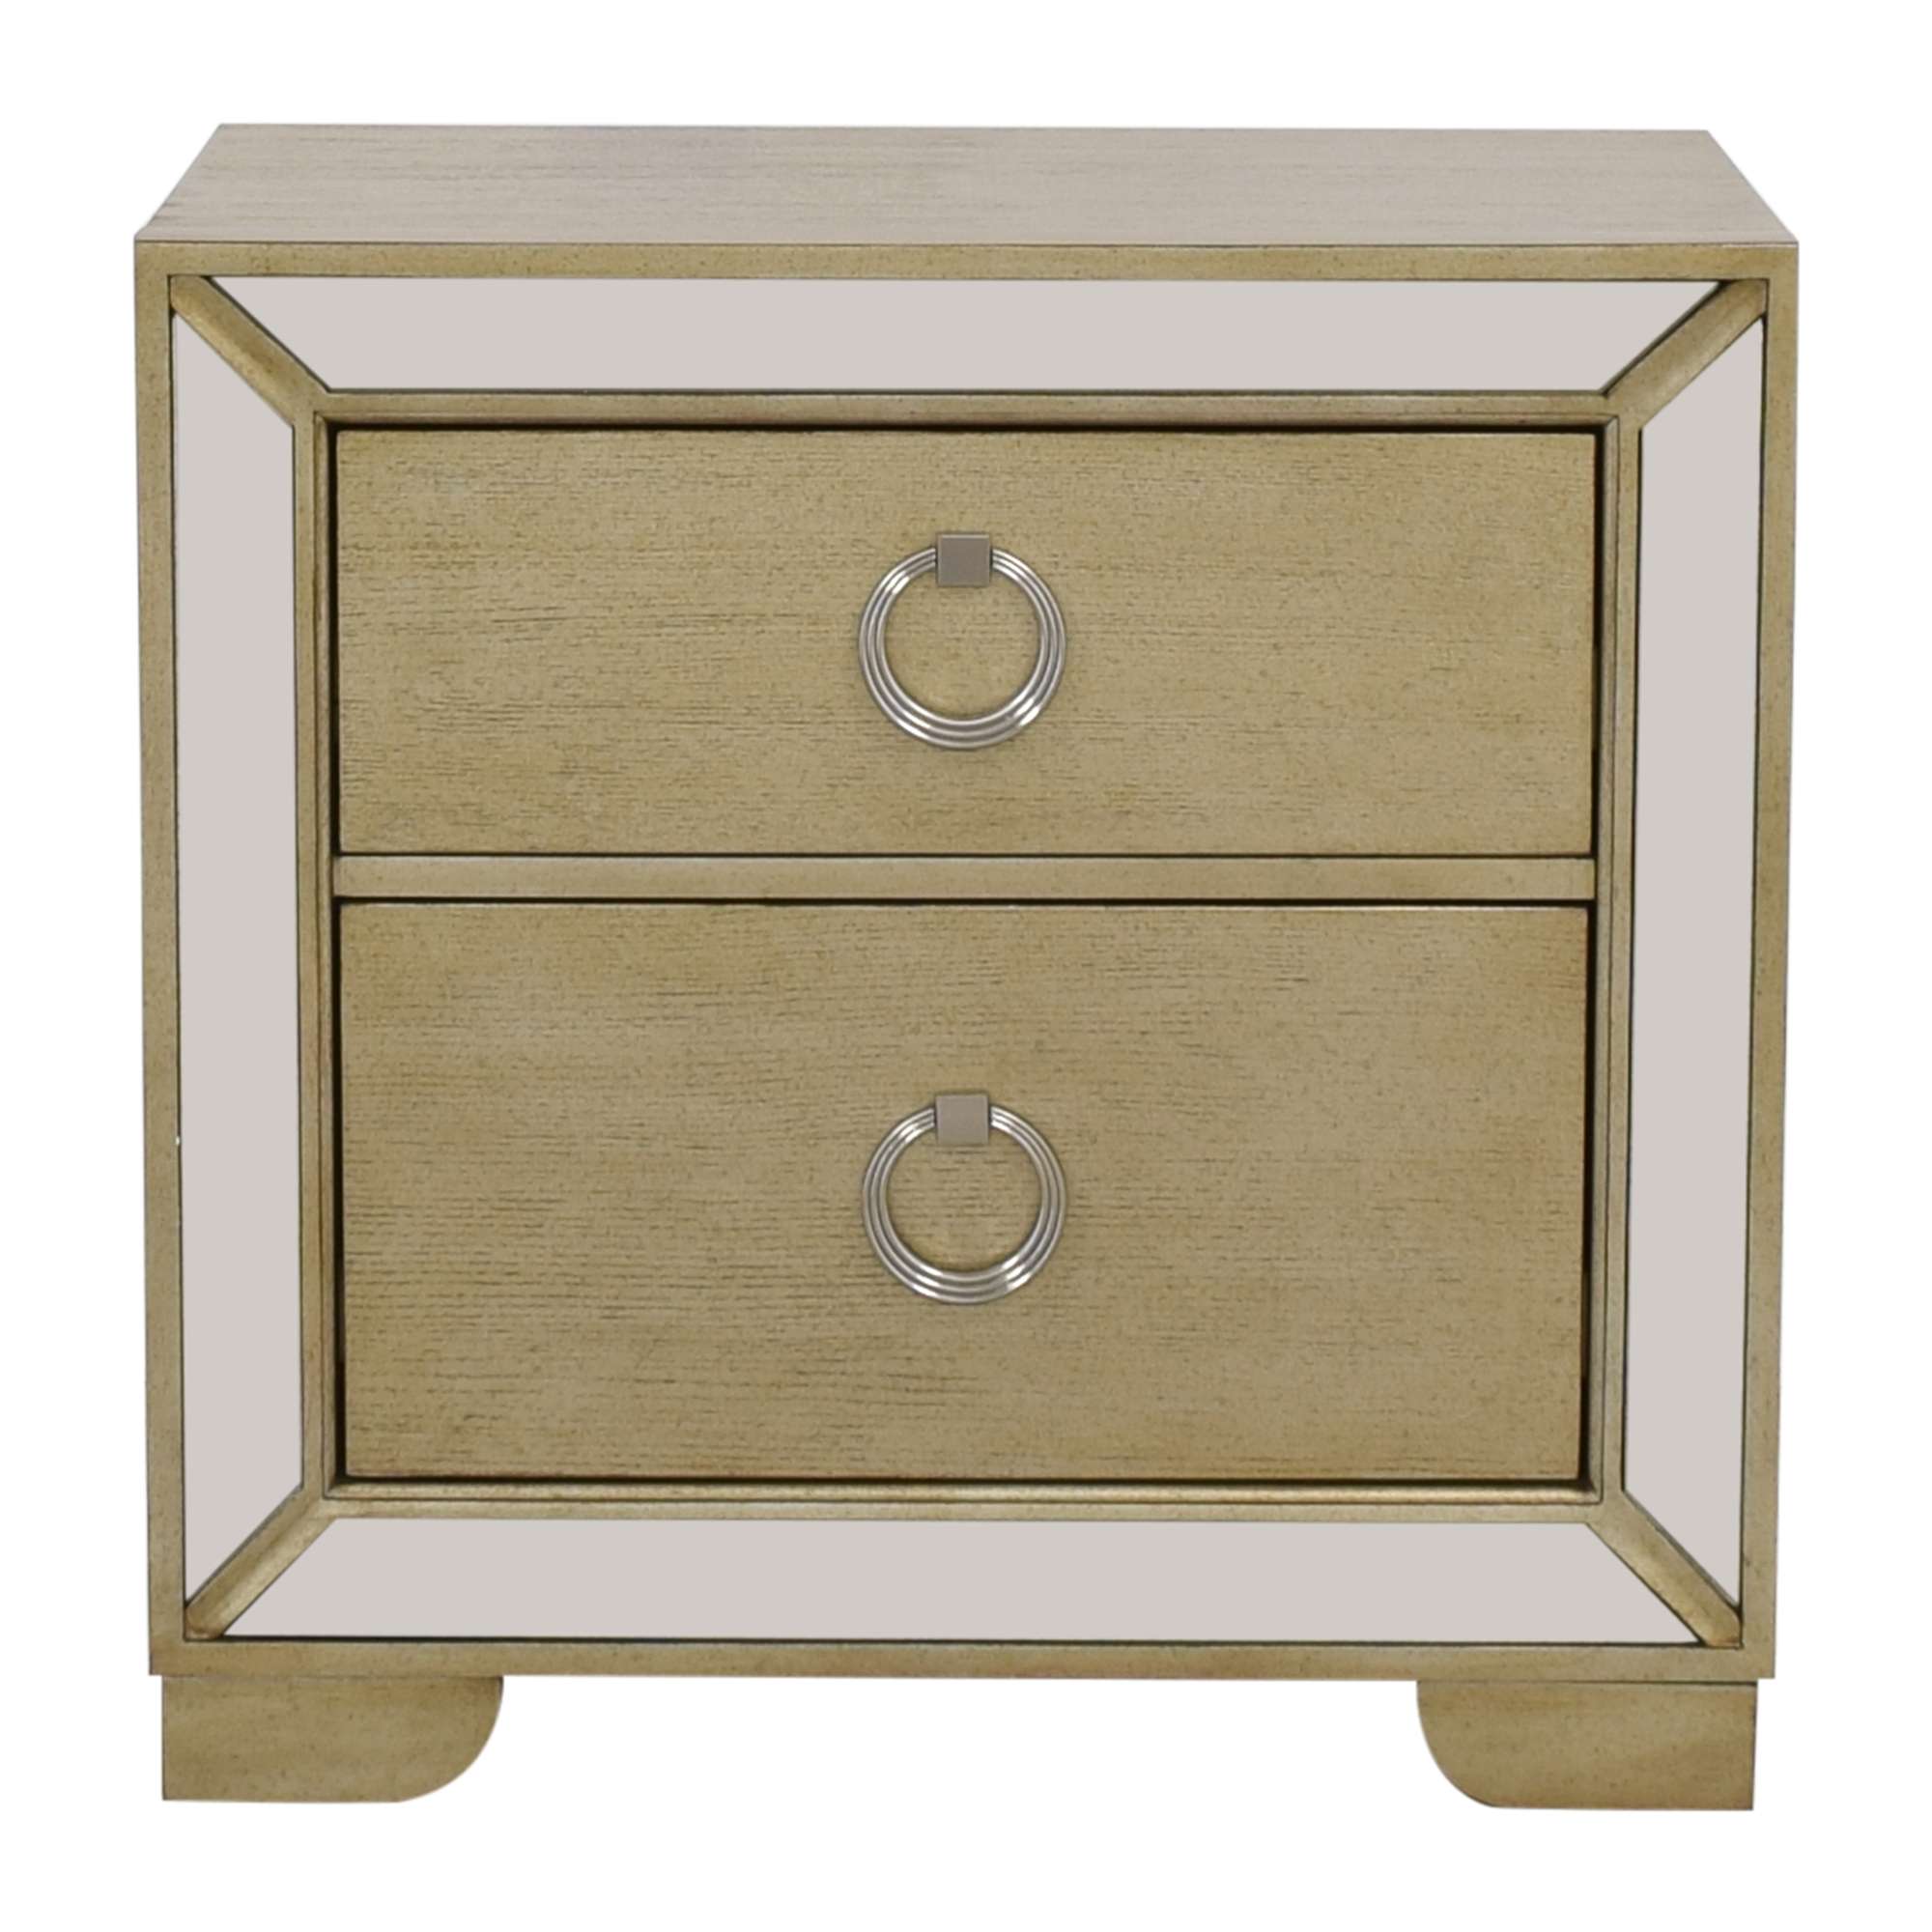 Macy's Macy's Ailey Nightstand coupon